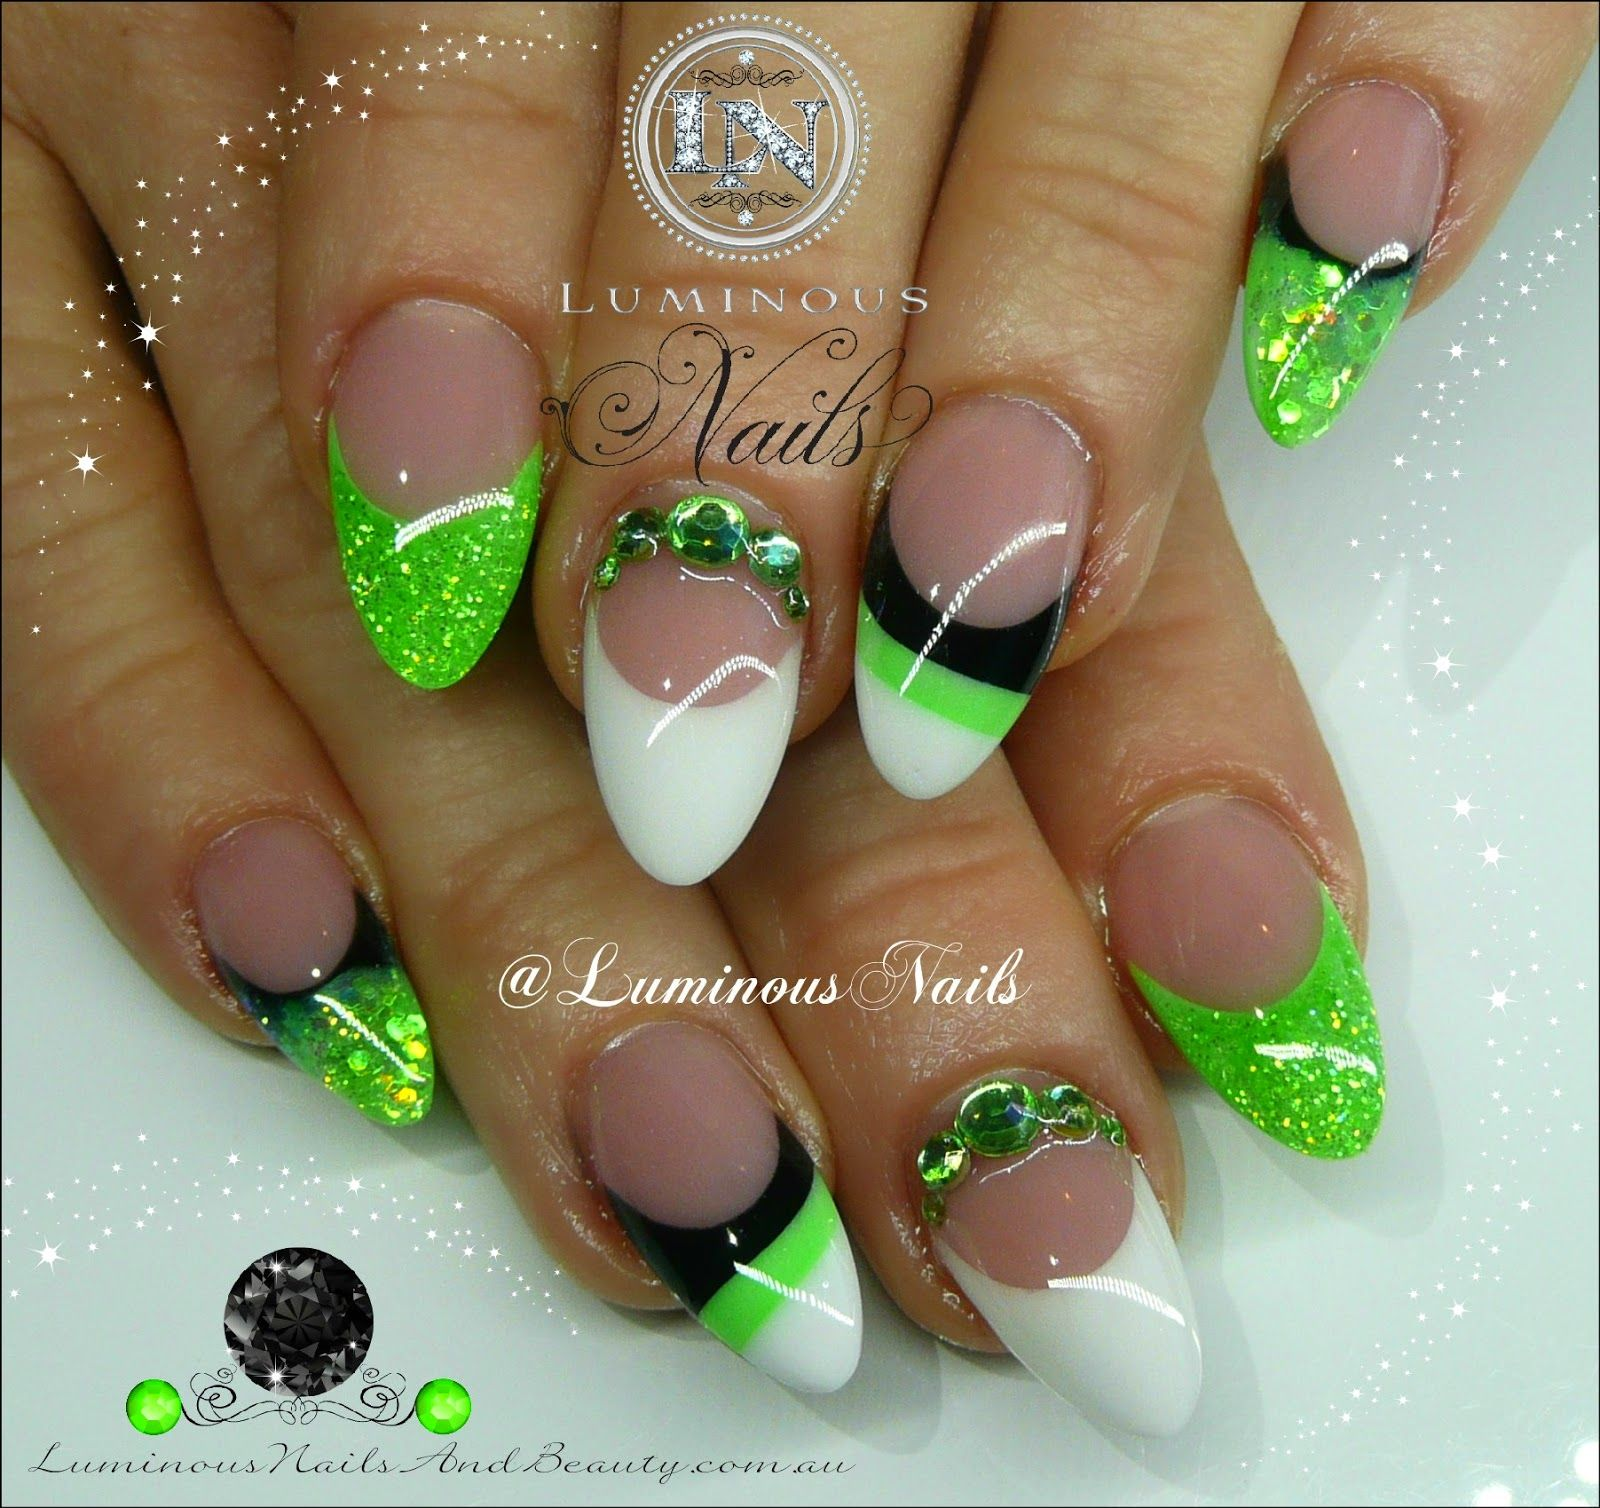 Luminousnailsbeautygoldcoastqueenslandlimegreenwhite lime white and black nail art first thought thesed be perfect for a tennis match or golf tournament luminous nails prinsesfo Choice Image